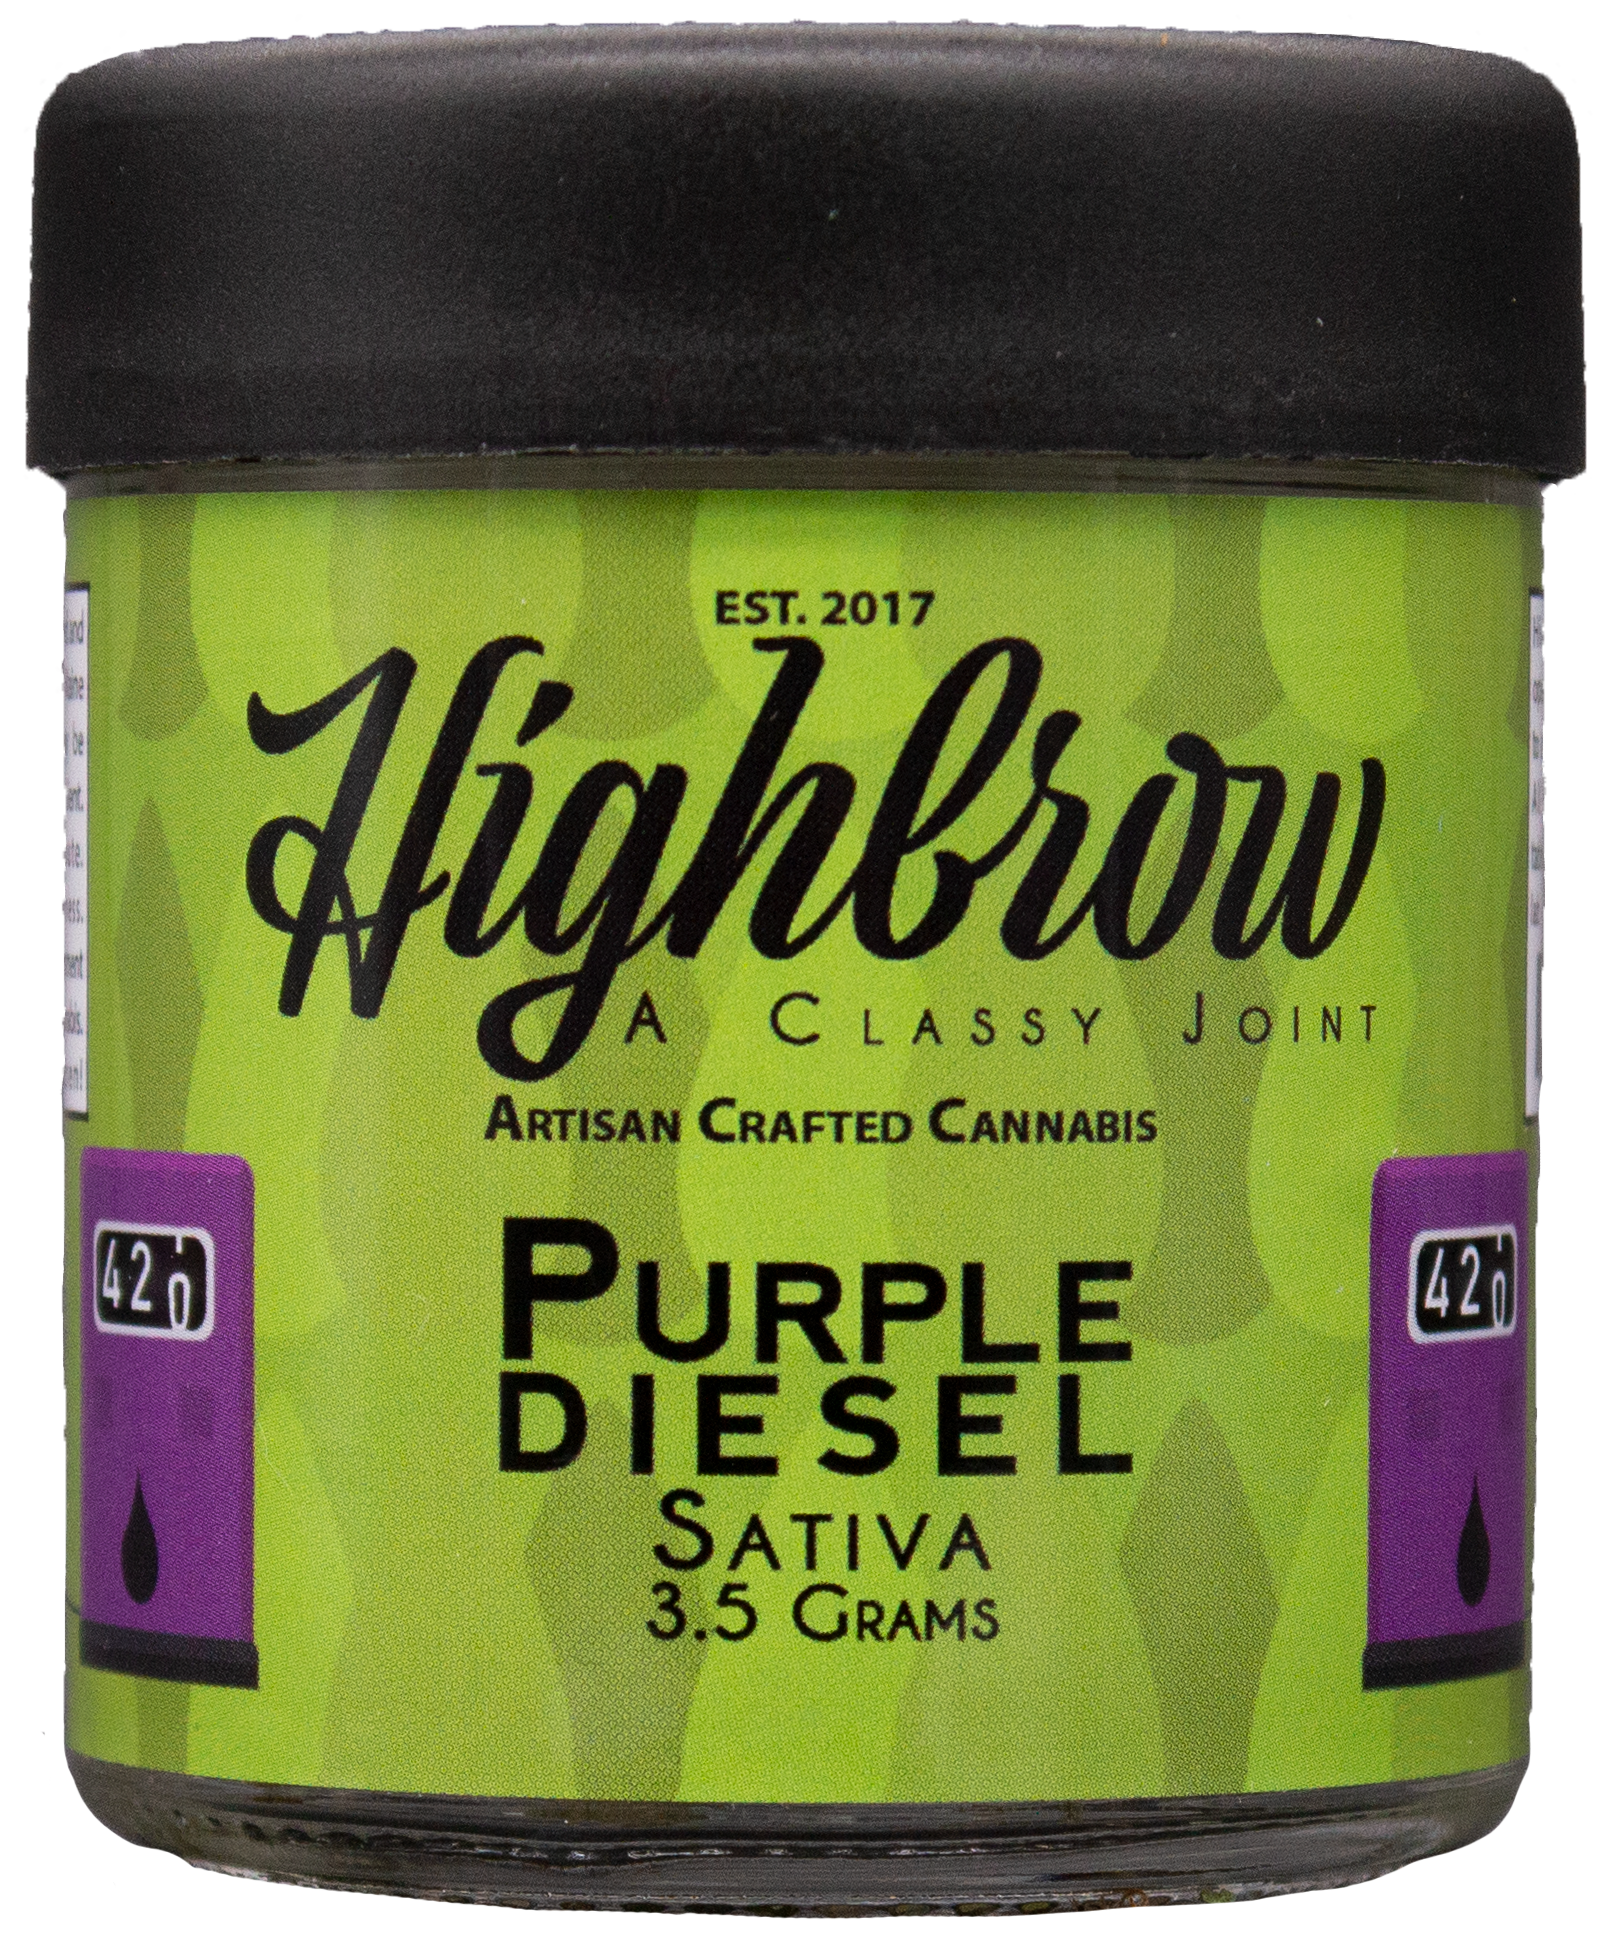 Purple Diesel - Fuel for your day.